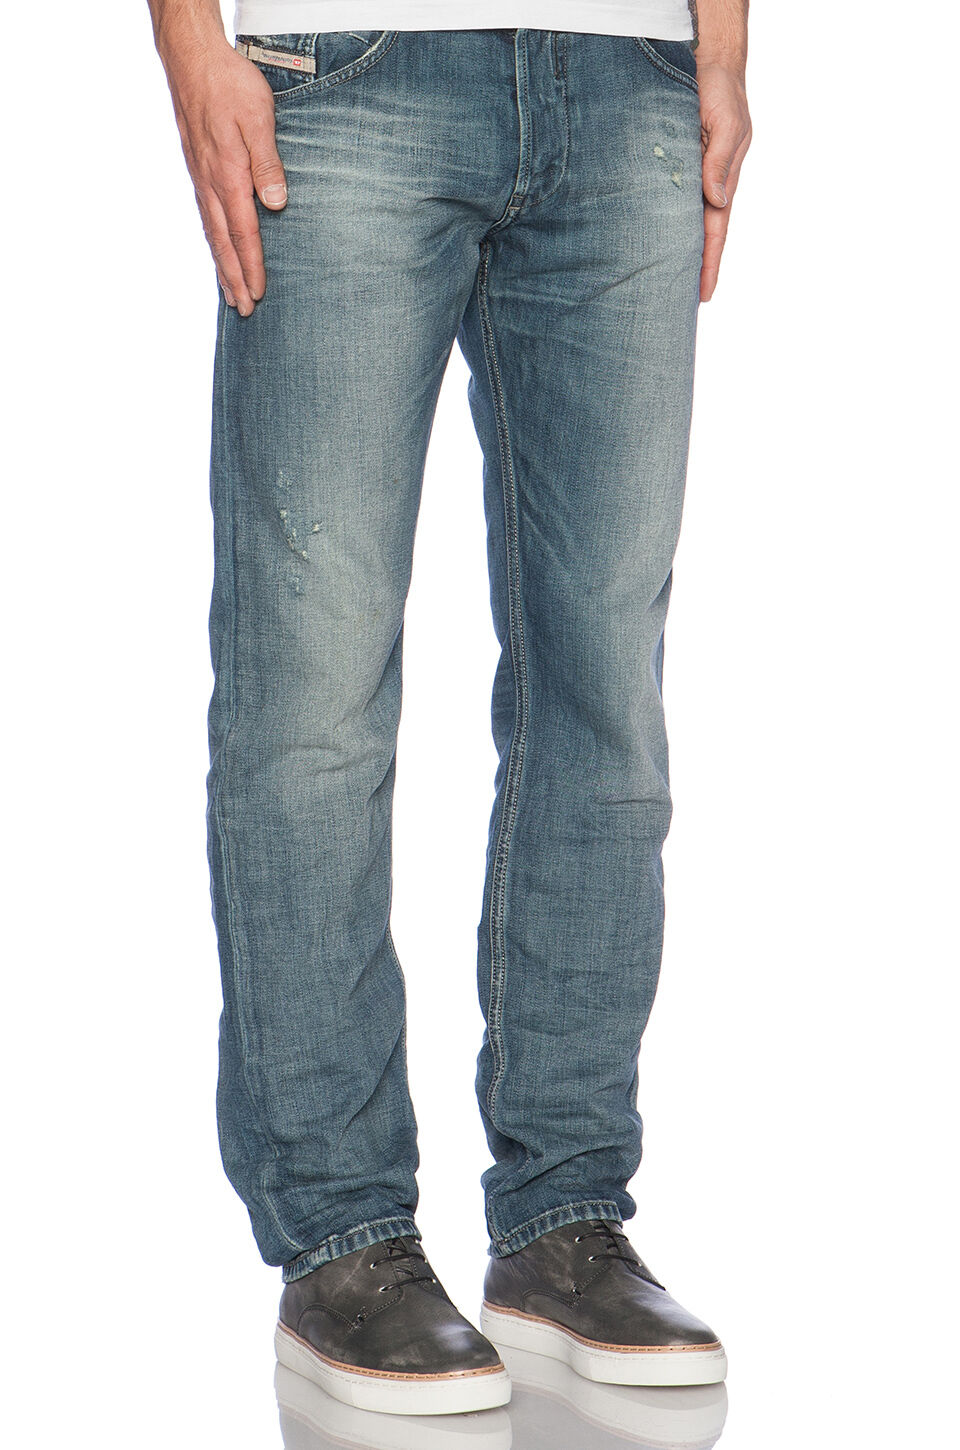 DIESEL BELTHER 0839K TAPErot JEANS W34 L32 100% AUTHENTIC